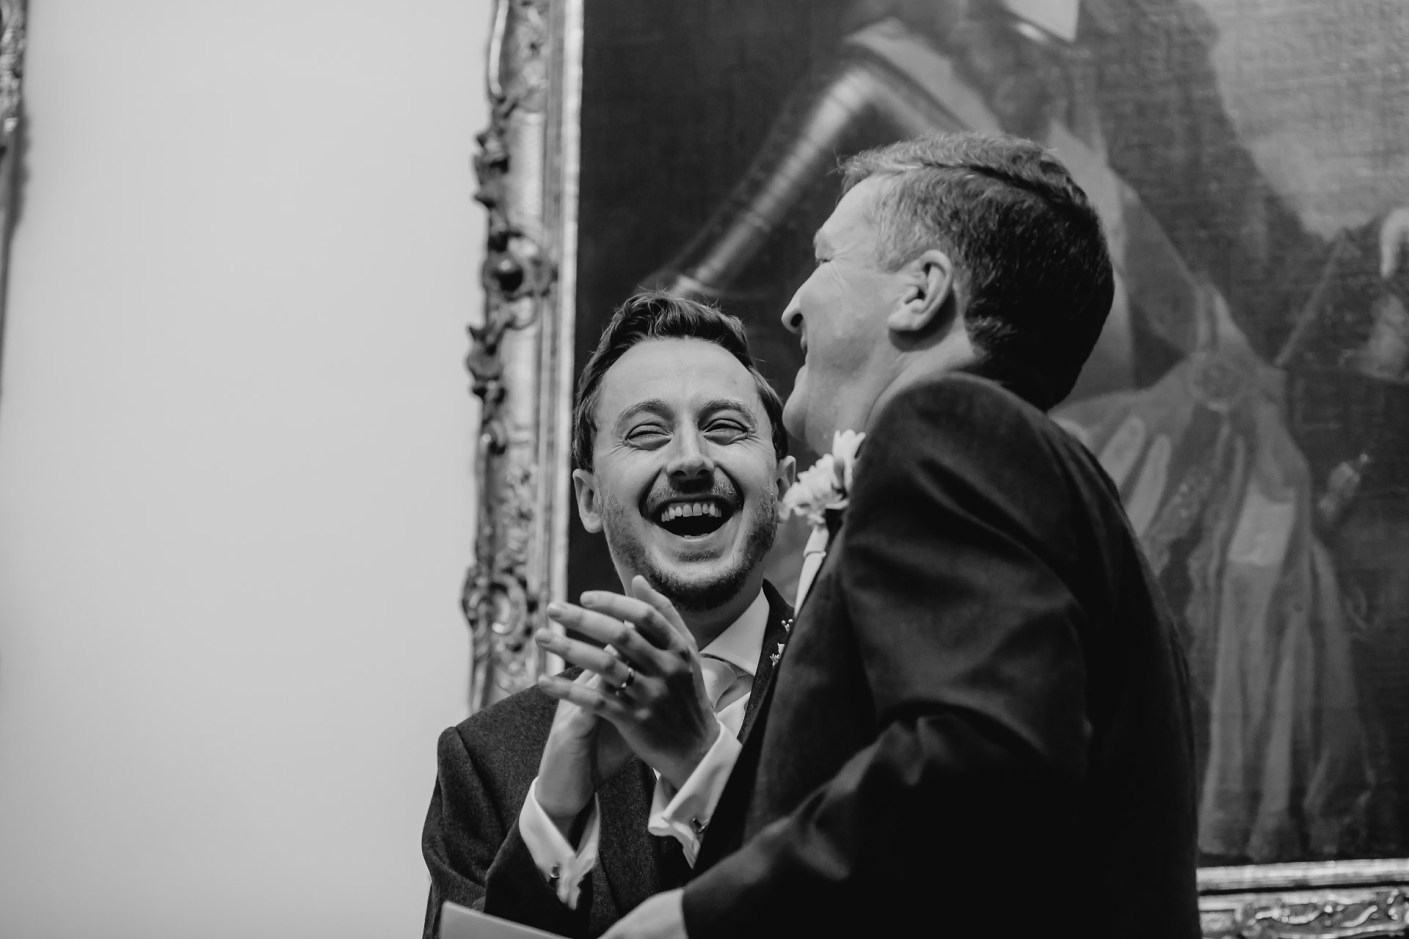 phil laughing with jess dad during the speeches